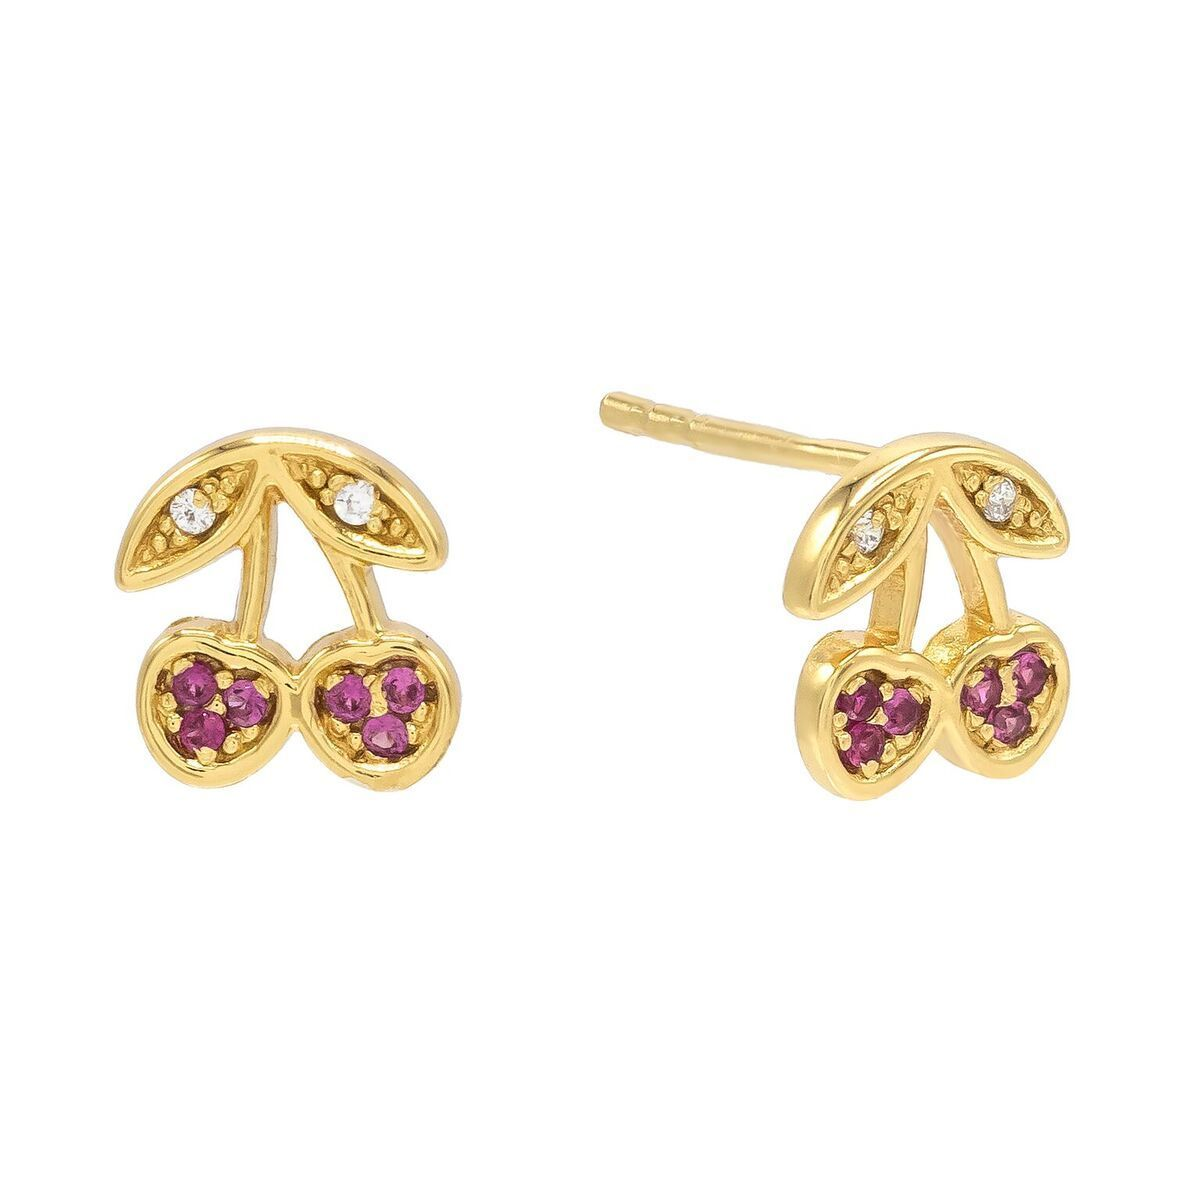 Cherry Stud Earring Gold | Urban Accessories NYC